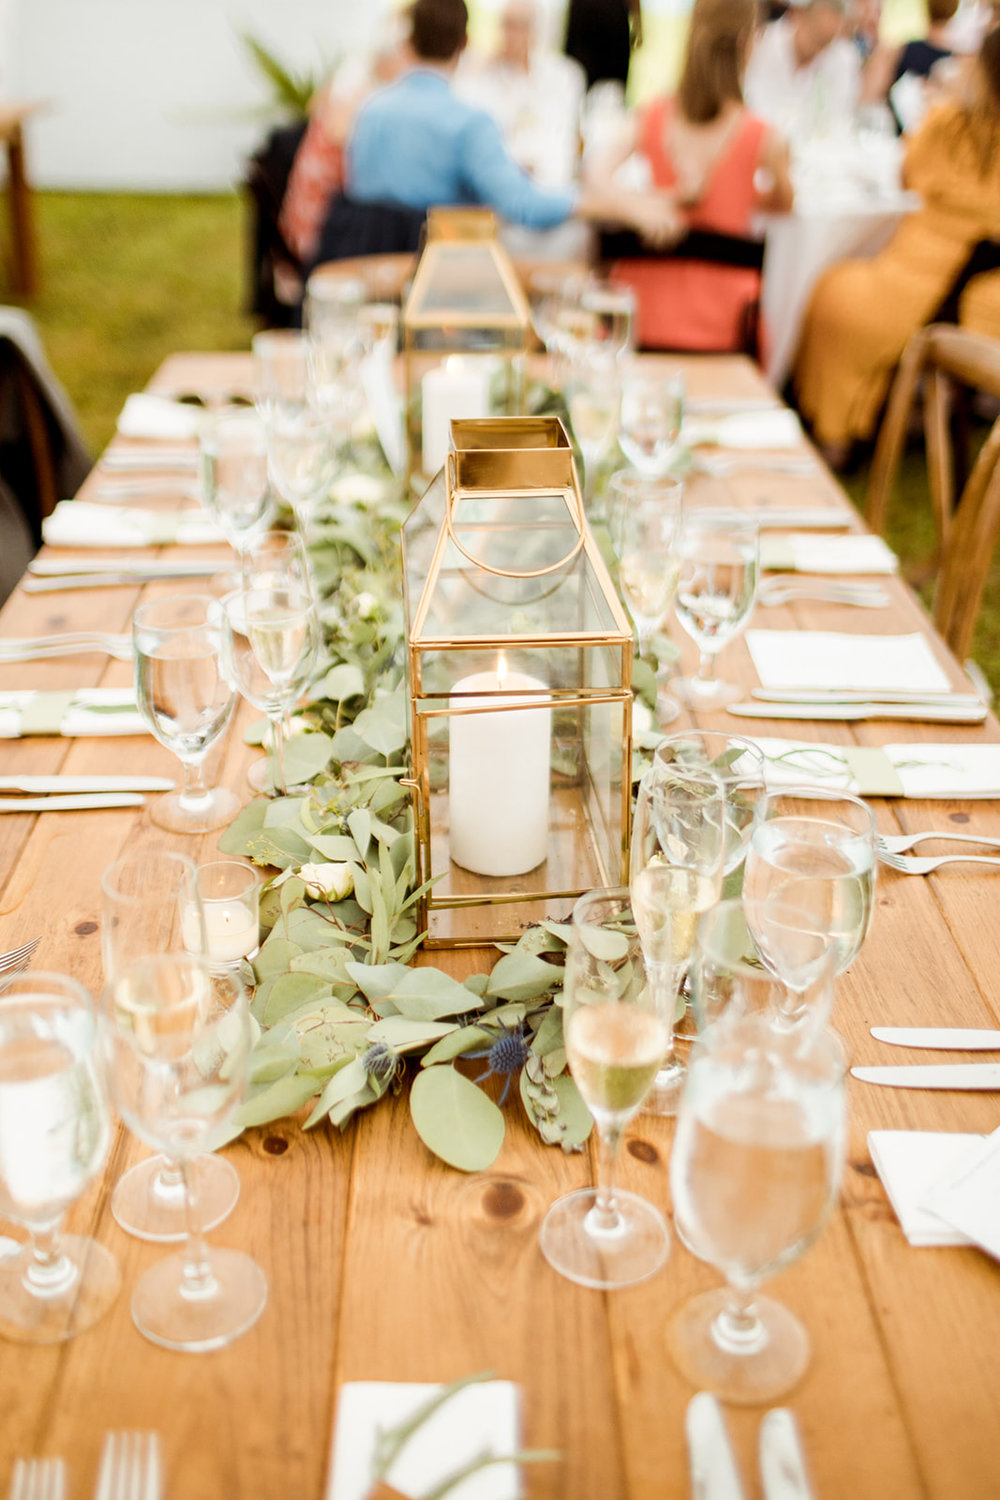 Gold lanterns and greenery for a wedding reception table centerpiece -Pearl Weddings & Events